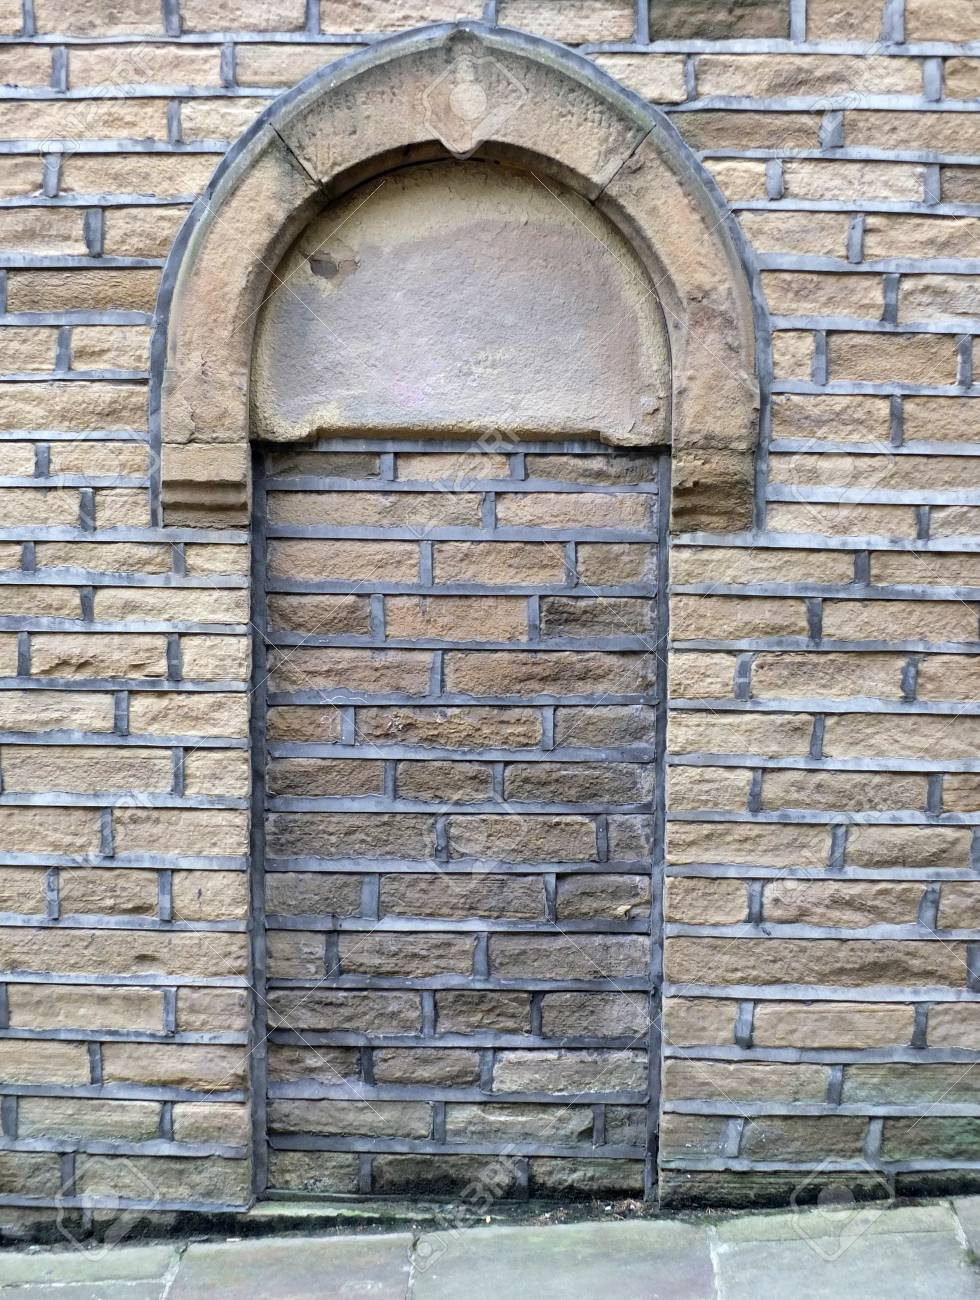 Ordinaire Bricked Up And Blacked Doorway In An Old Stone Building With Arch Over Door  Frame Stock